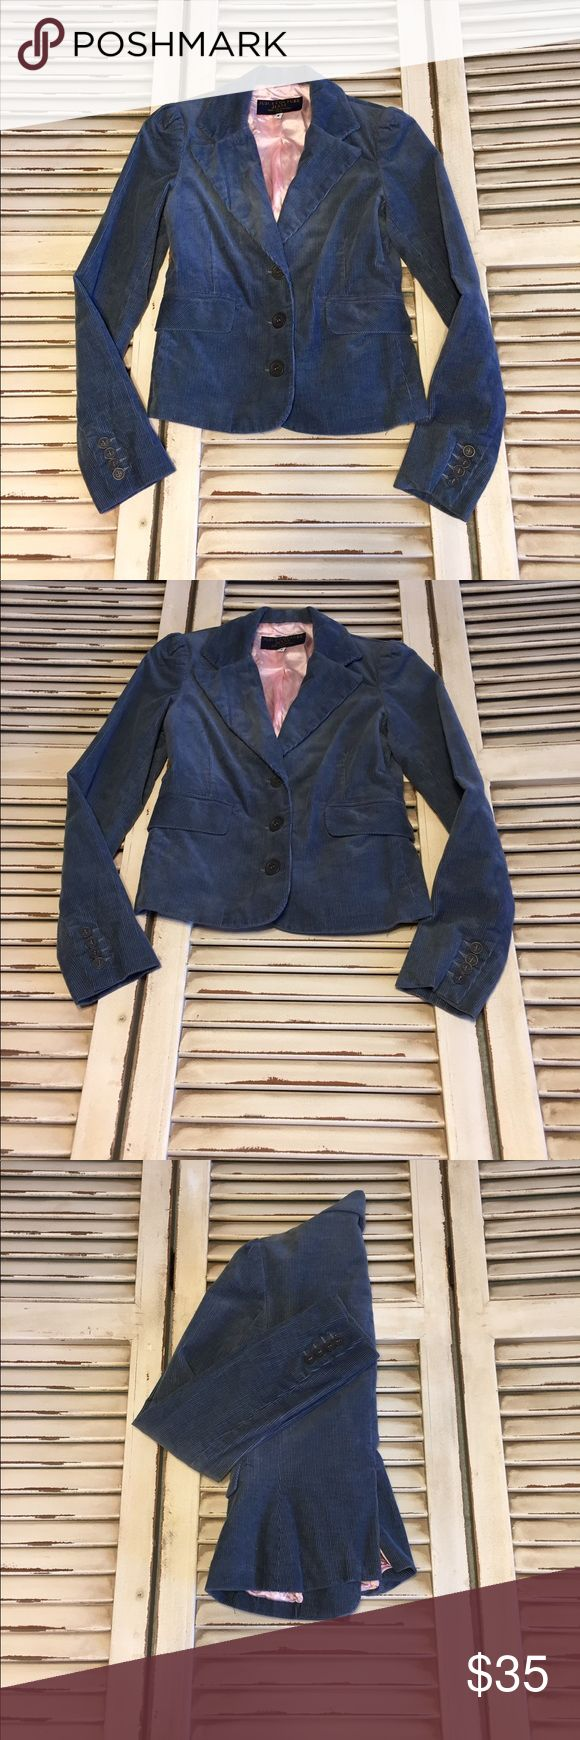 EUC Sz Sm Juicy Couture Blue Corduroy Jacket Beautiful Juicy Couture Blue Corduroy Jacket in excellent condition. Well cared for. Comes from smoke free and pet free home. All of my items are shipped fresh and clean. BUNDLE AND SAVE! 30% OFF BUNDLES OF TWO OR MORE! Juicy Couture Jackets & Coats